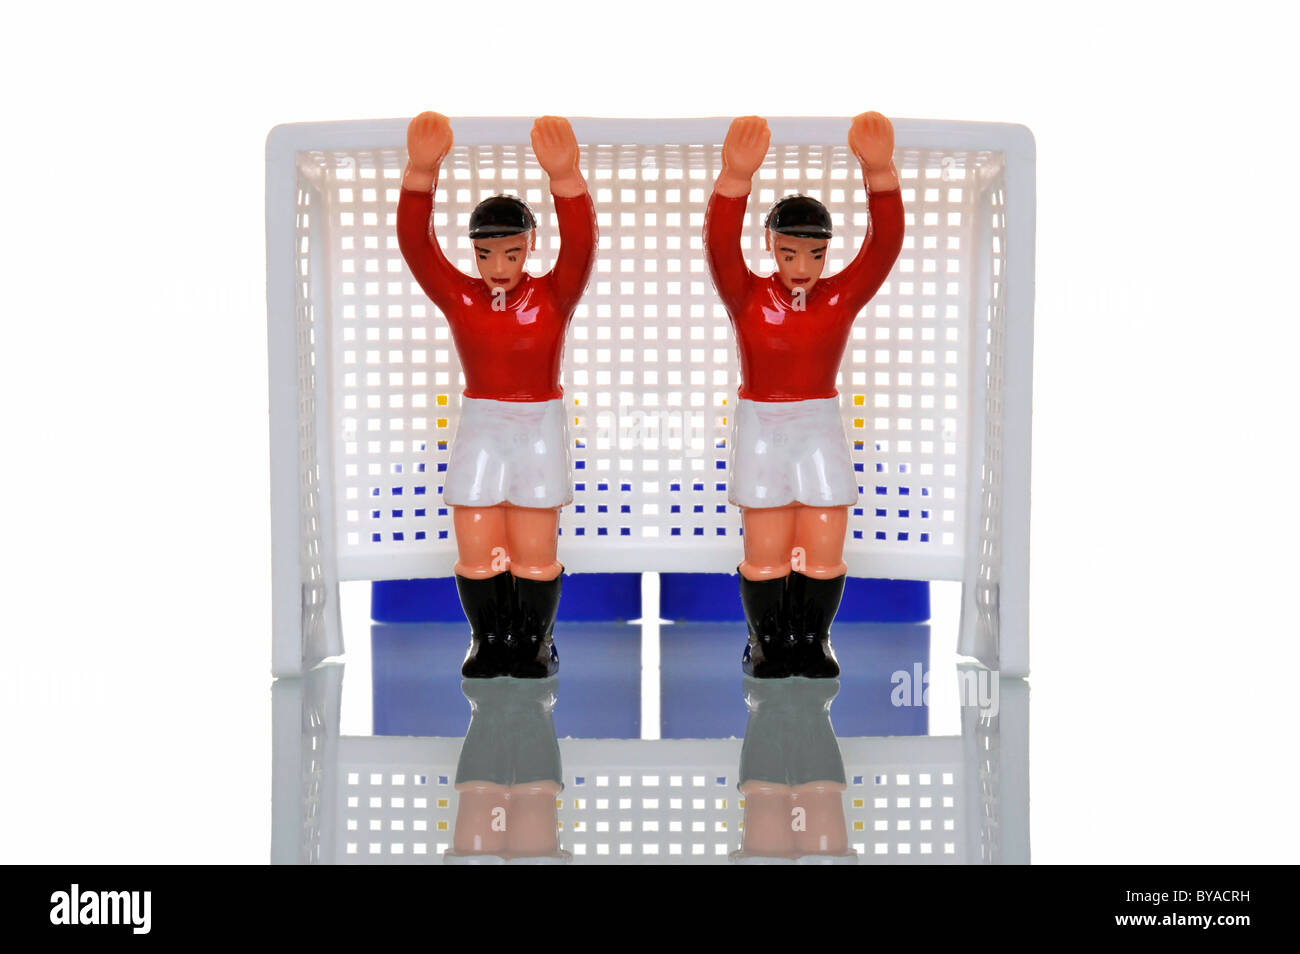 Two toy figures of goalkeepers standing in a goal, symbolic image for double security - Stock Image